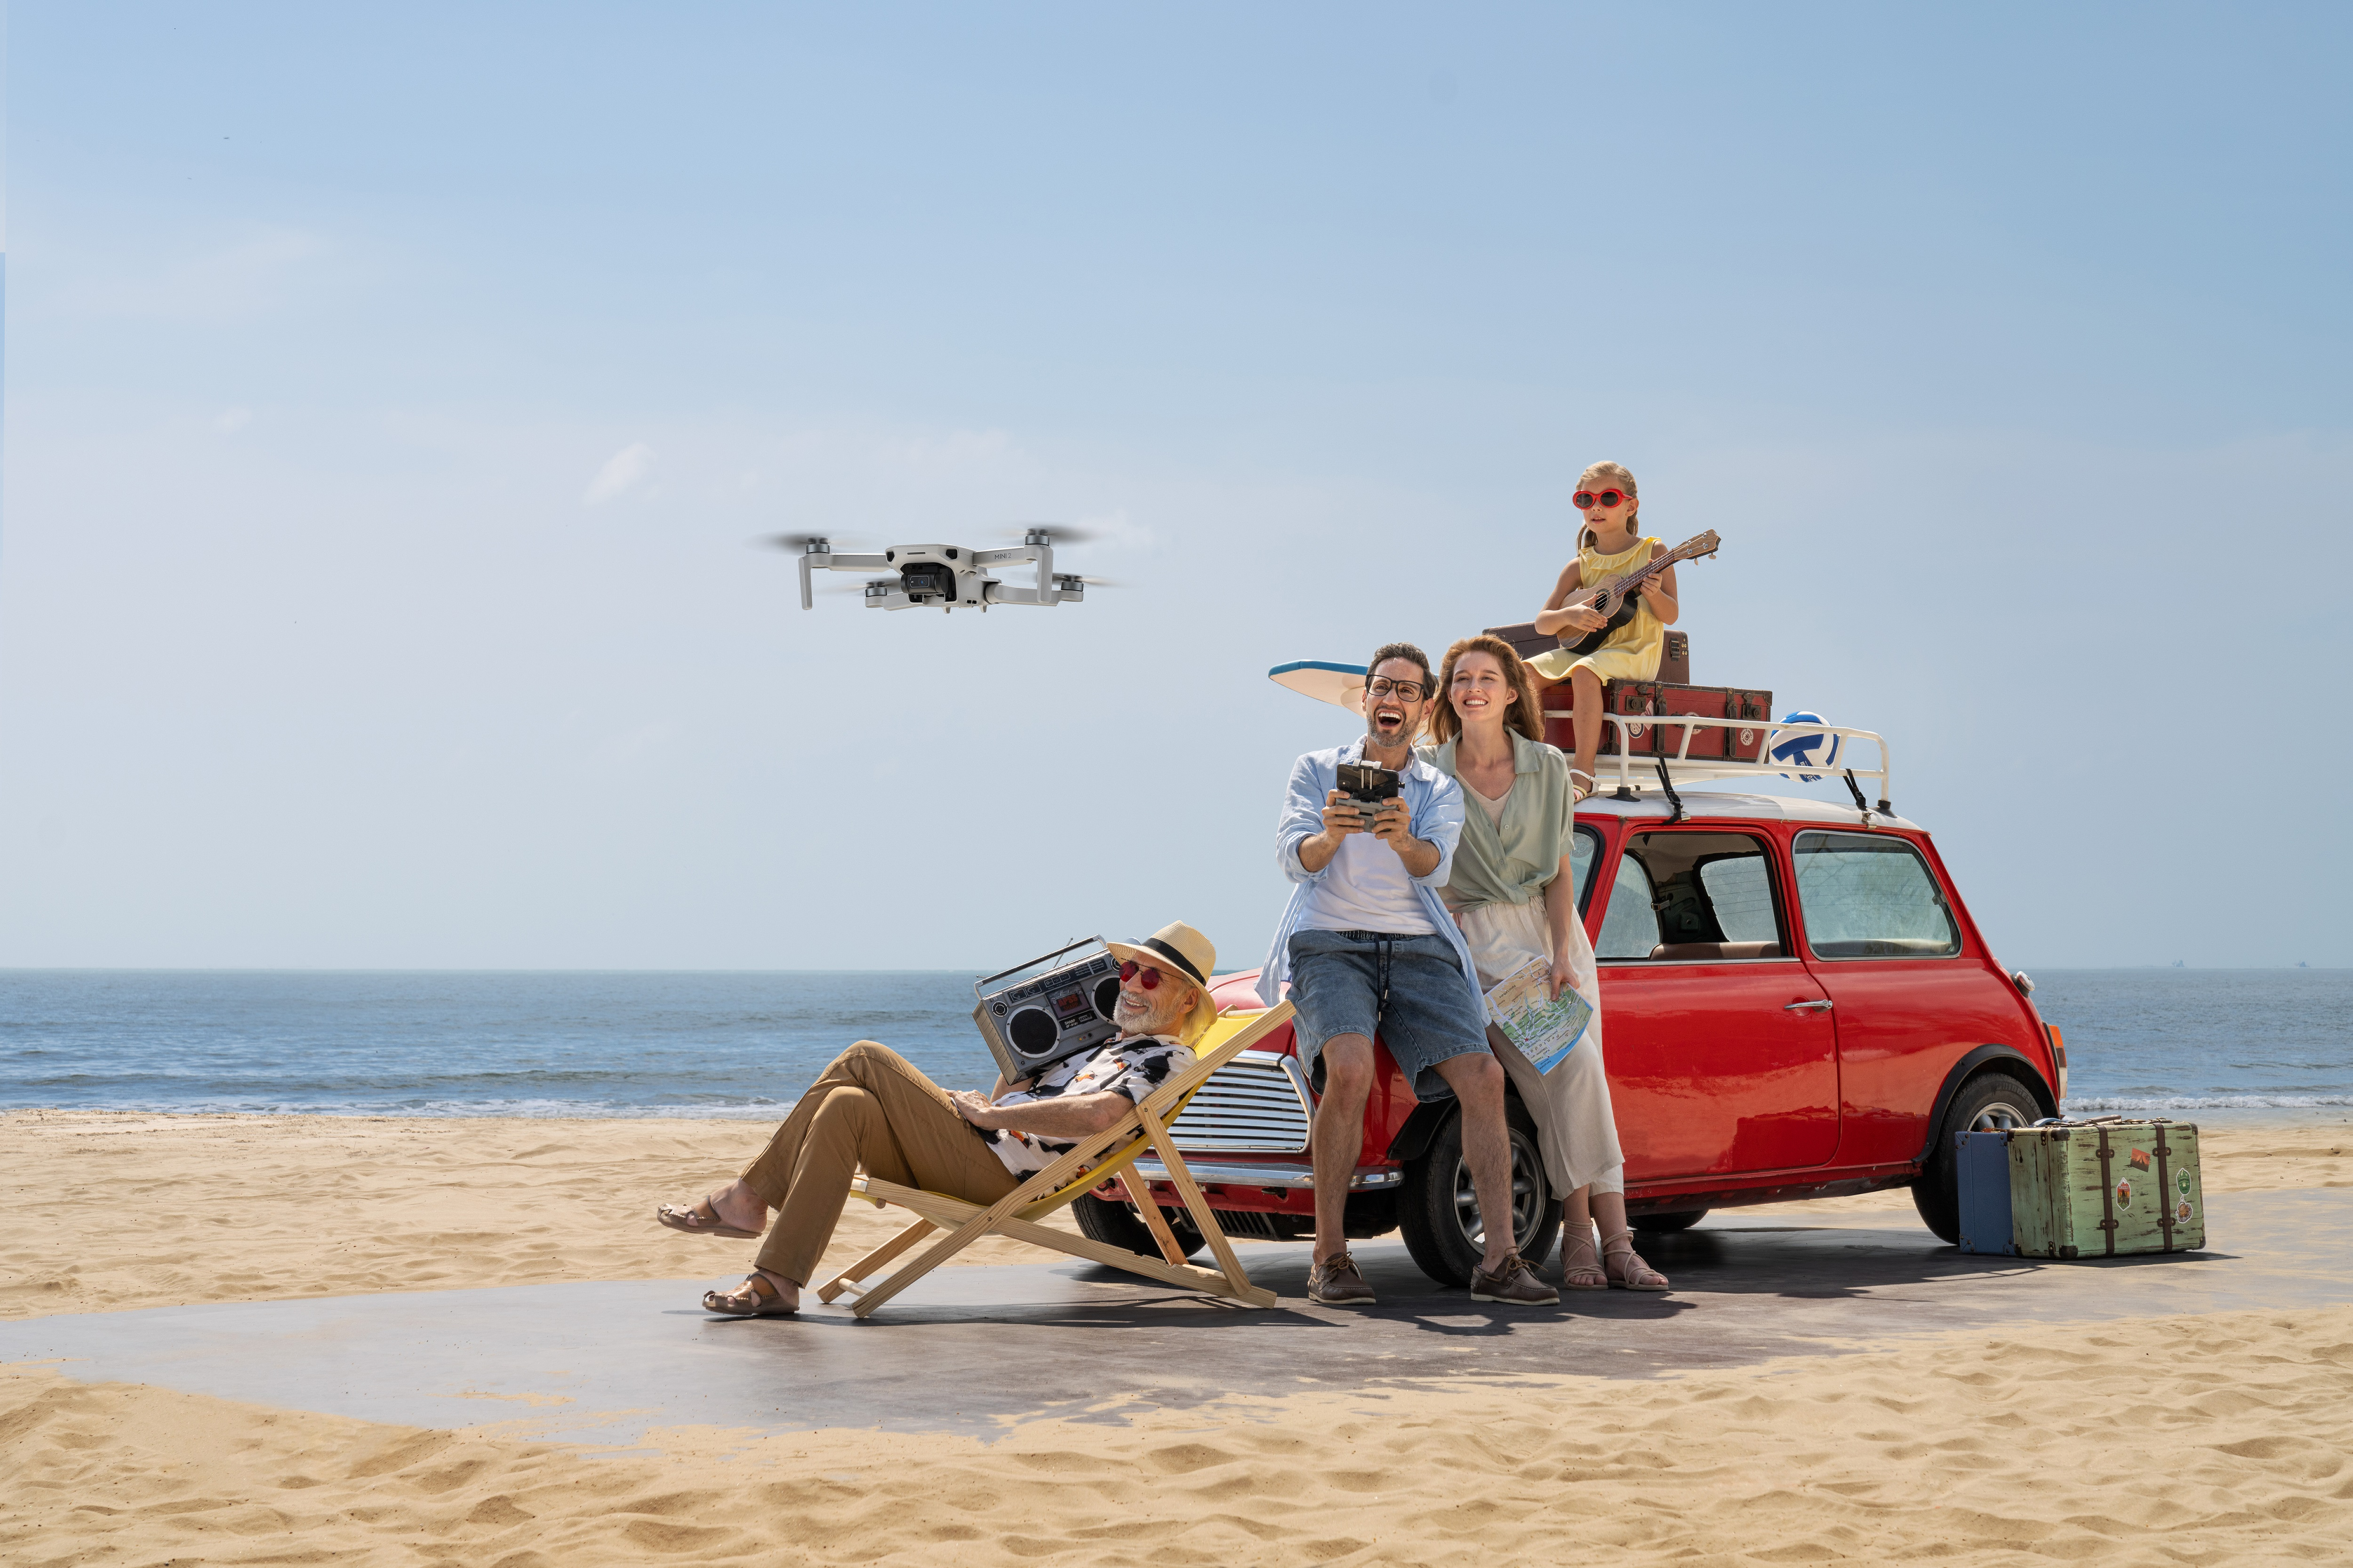 Camera drones: the five best drones for 2021 to help you take the perfect aerial photo